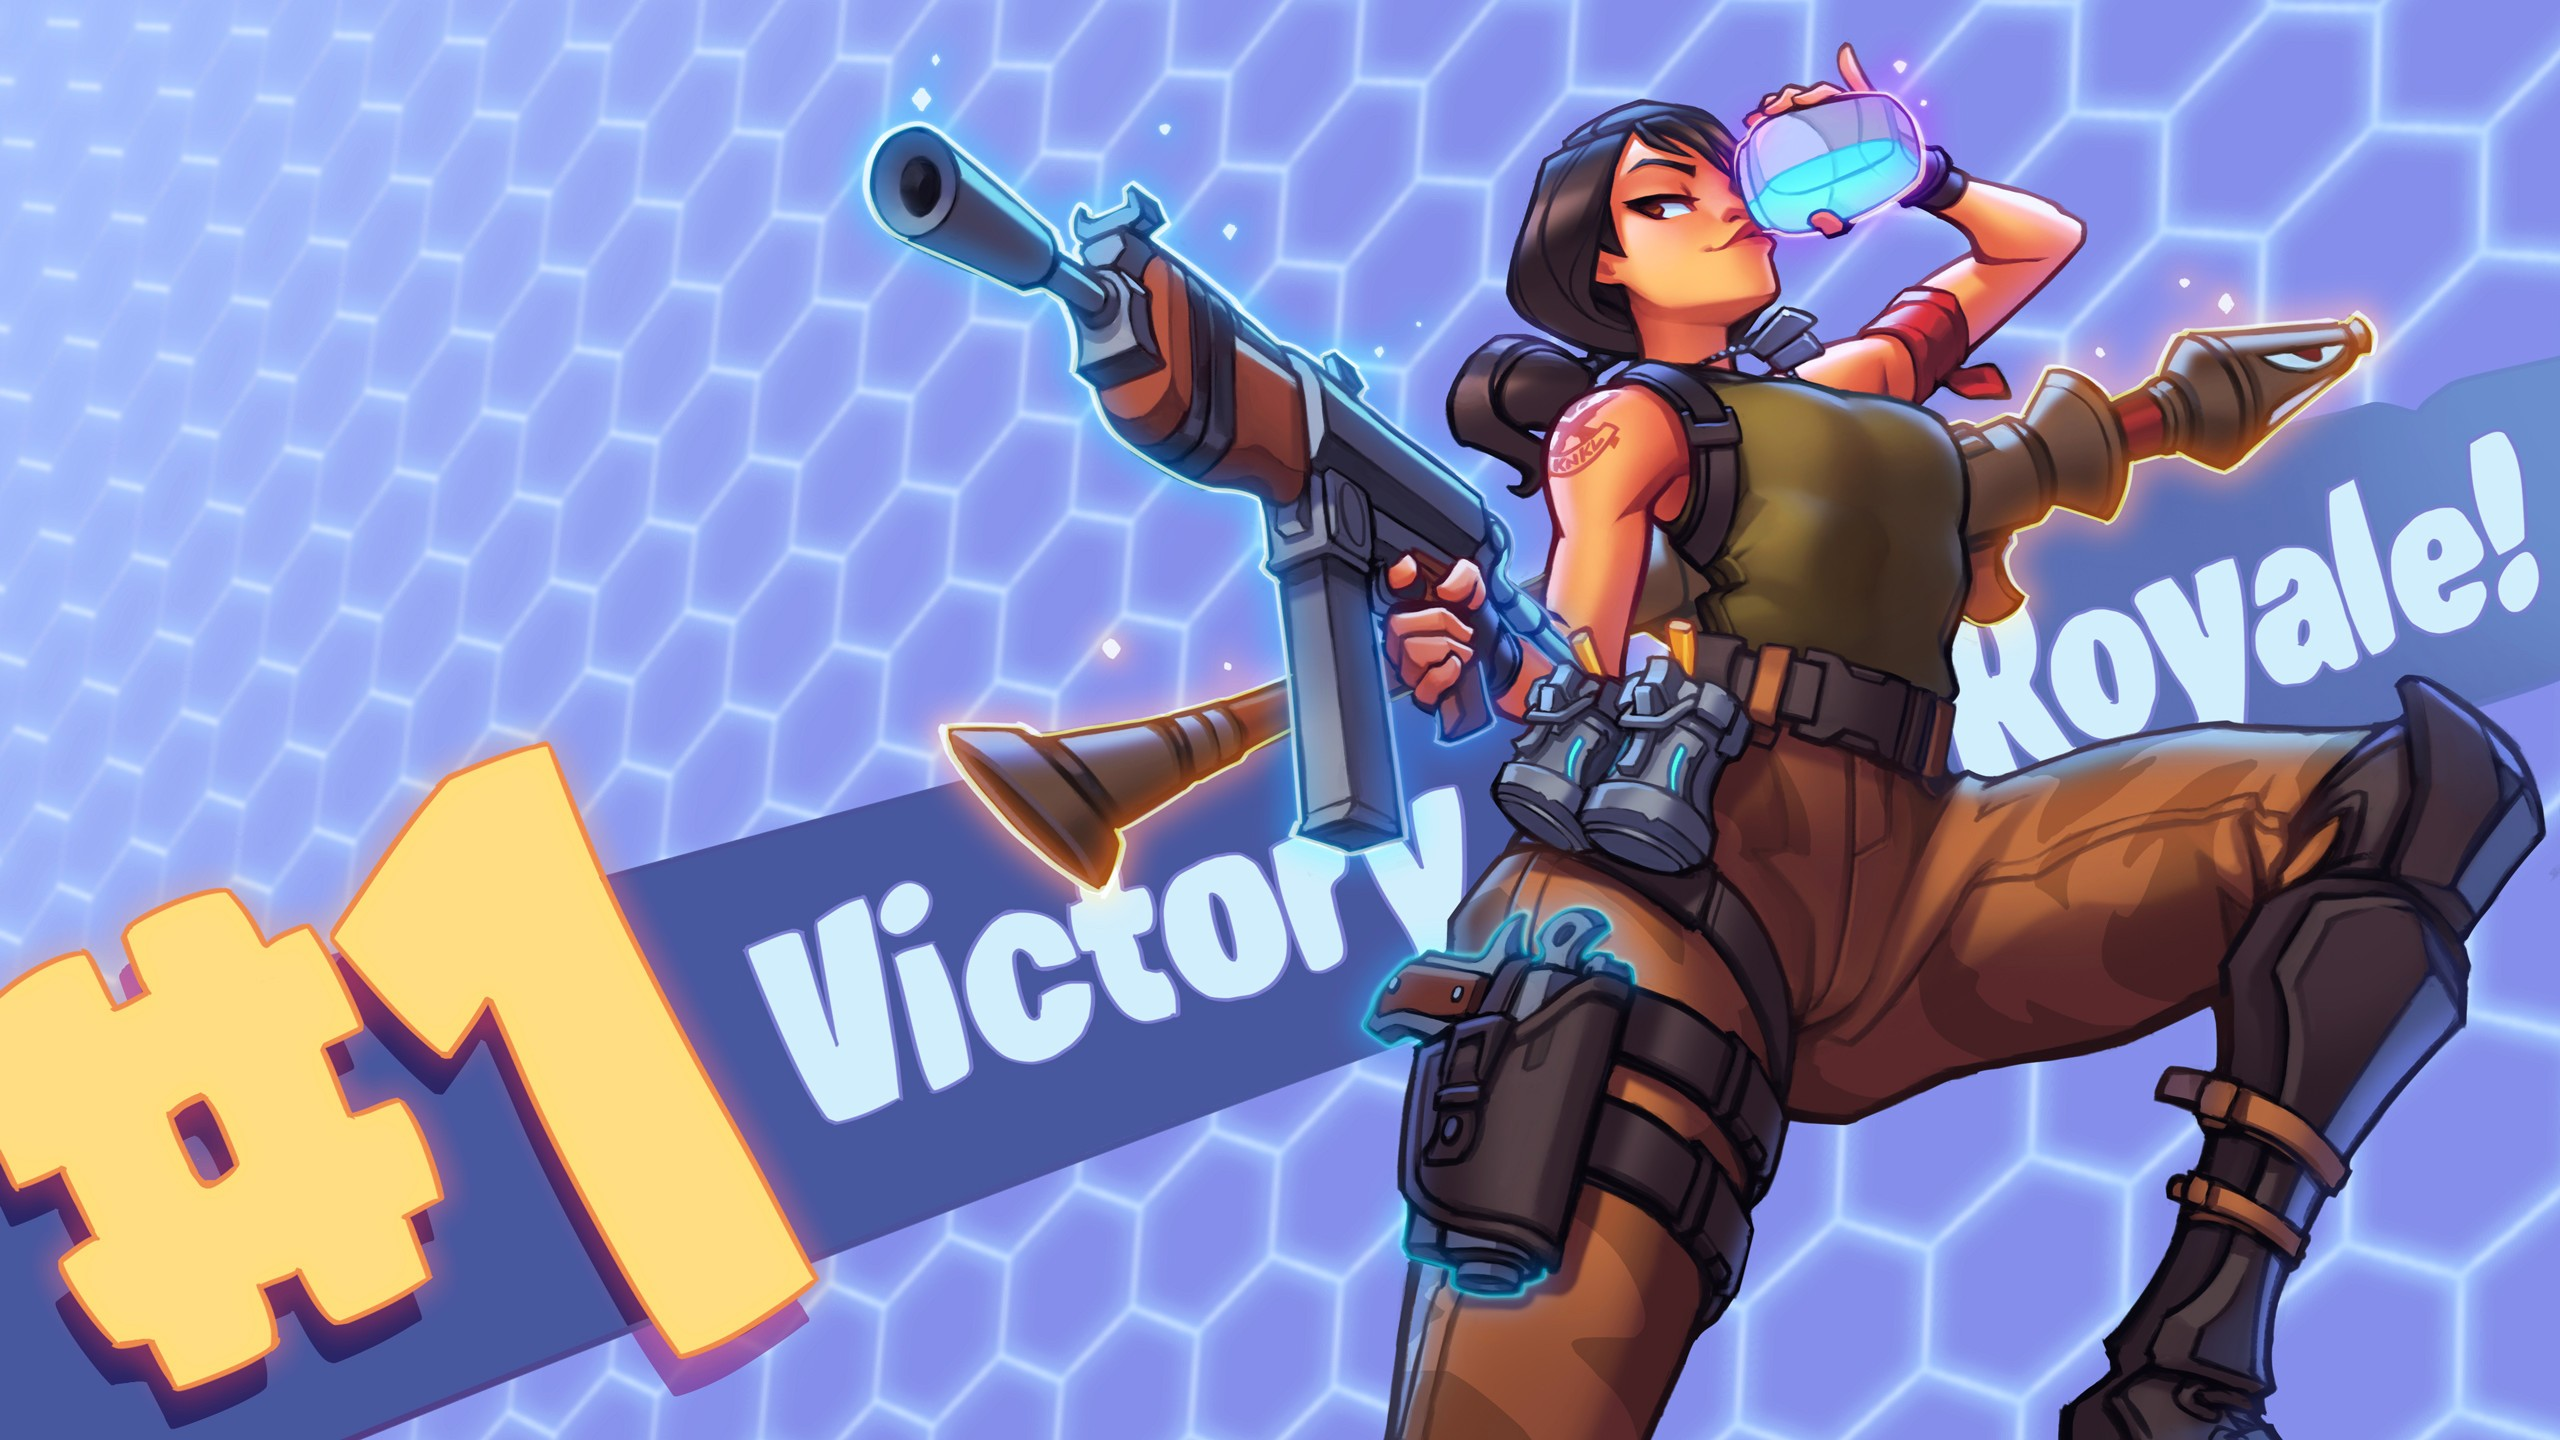 Fortnite background clipart victory royale.